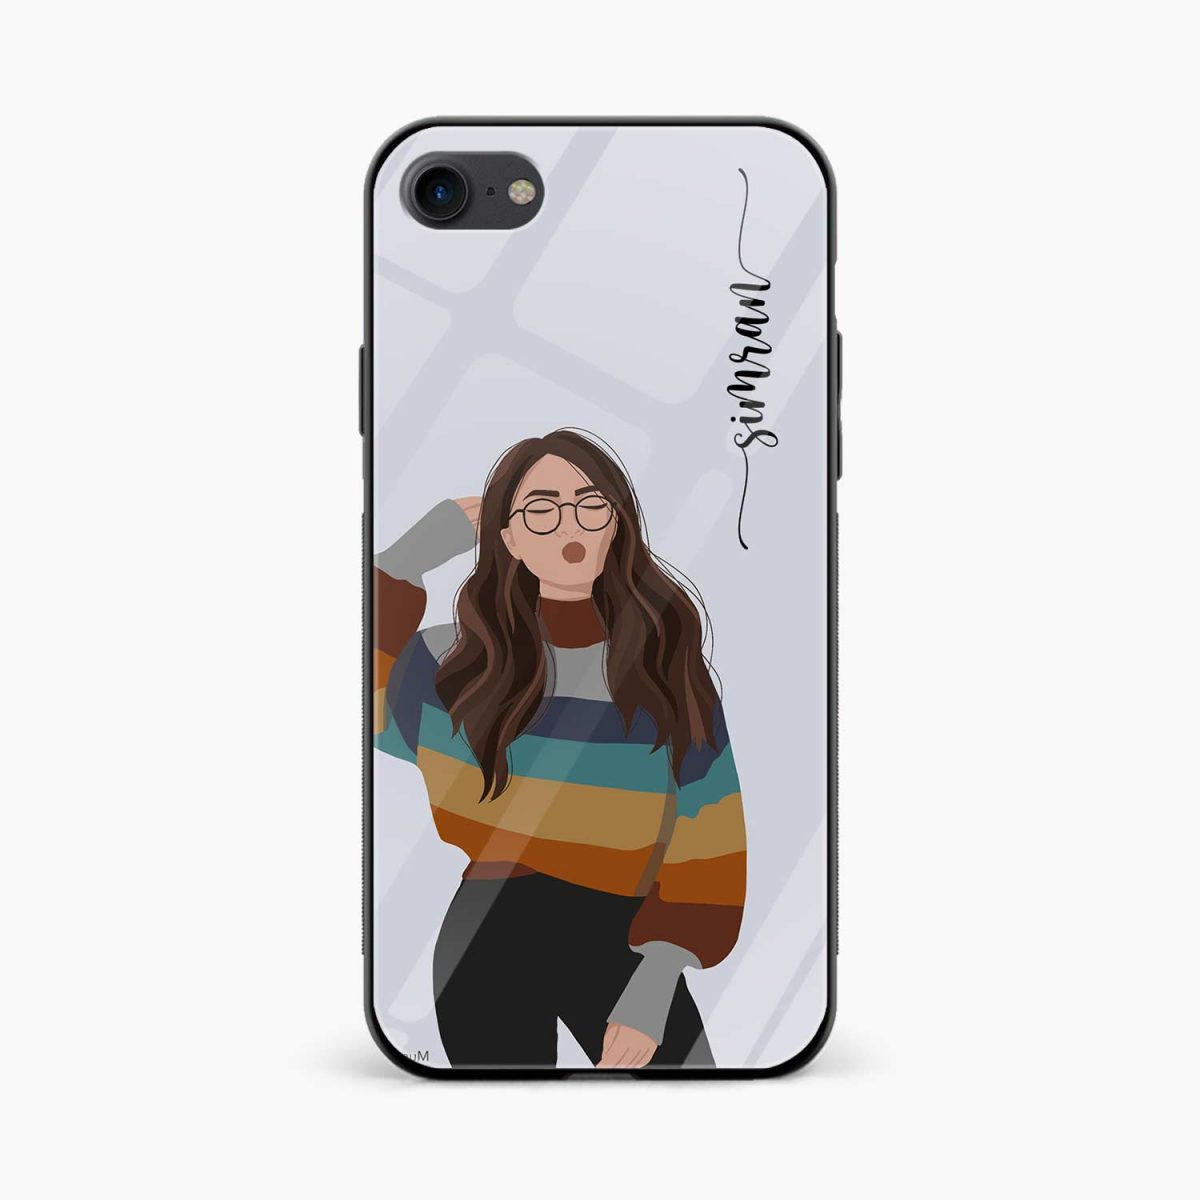 its me front view apple iphone 6 7 8 se back cover